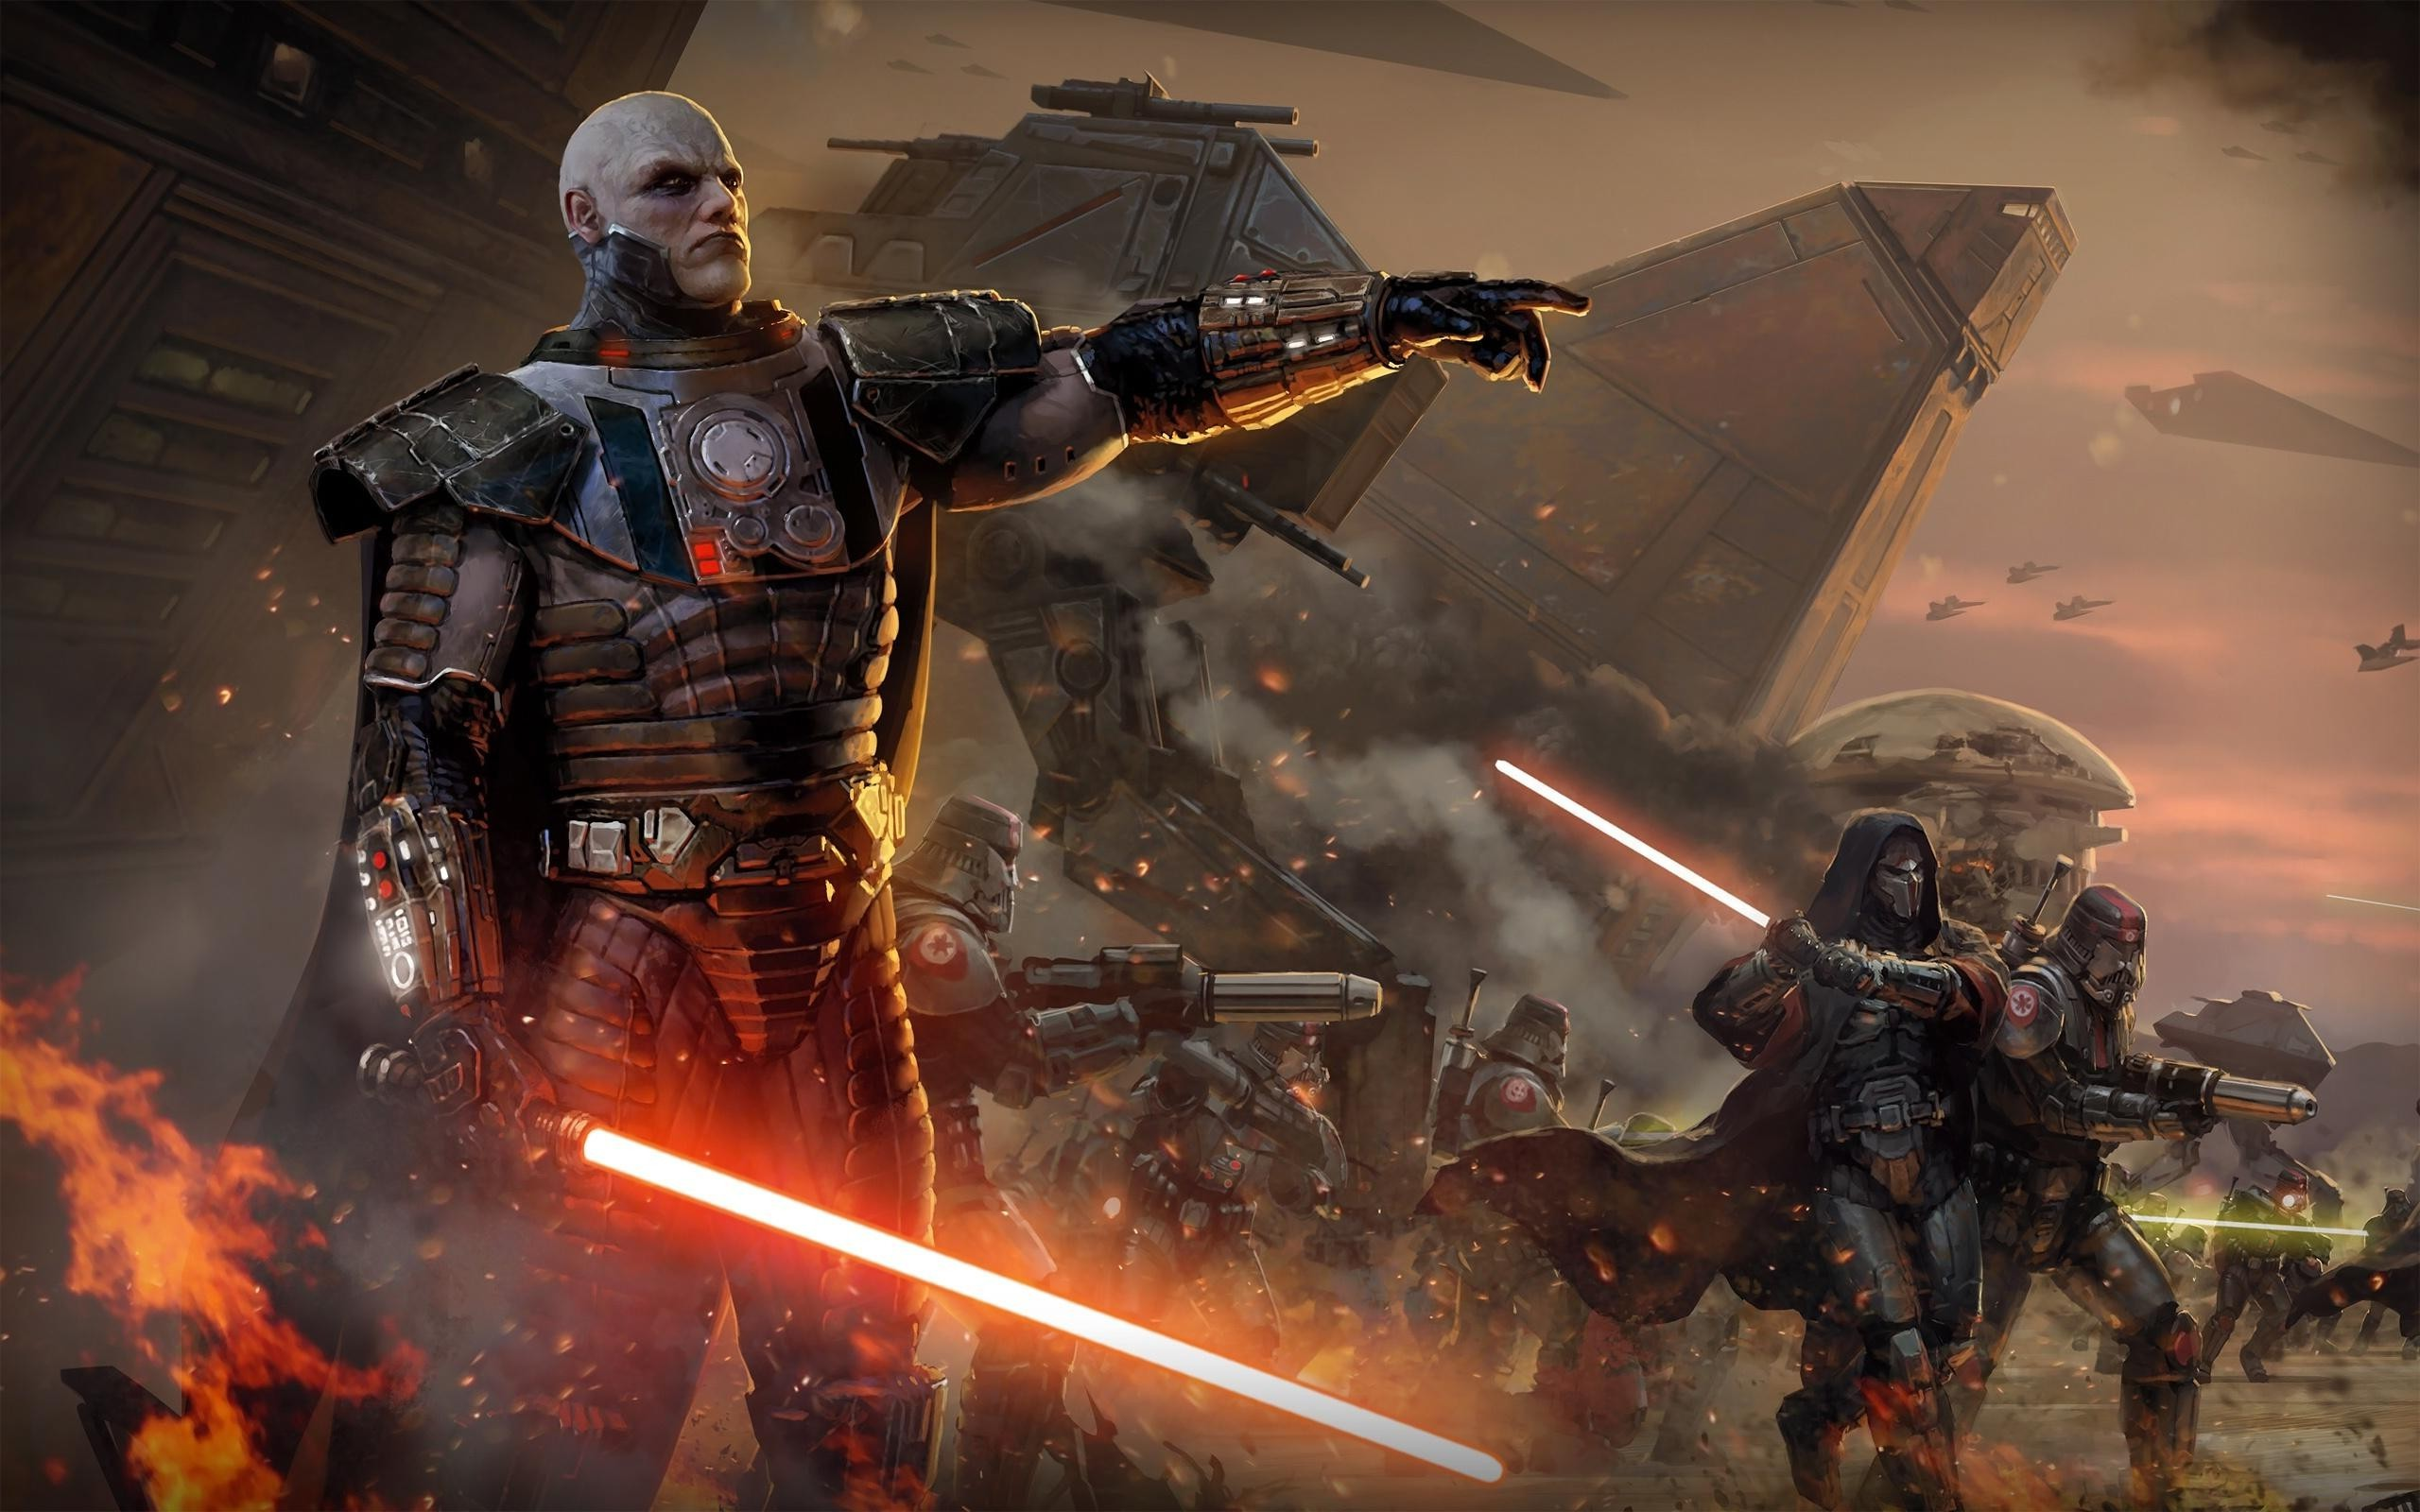 2560x1600 Star Wars, Star Wars: The Old Republic, Lightsaber